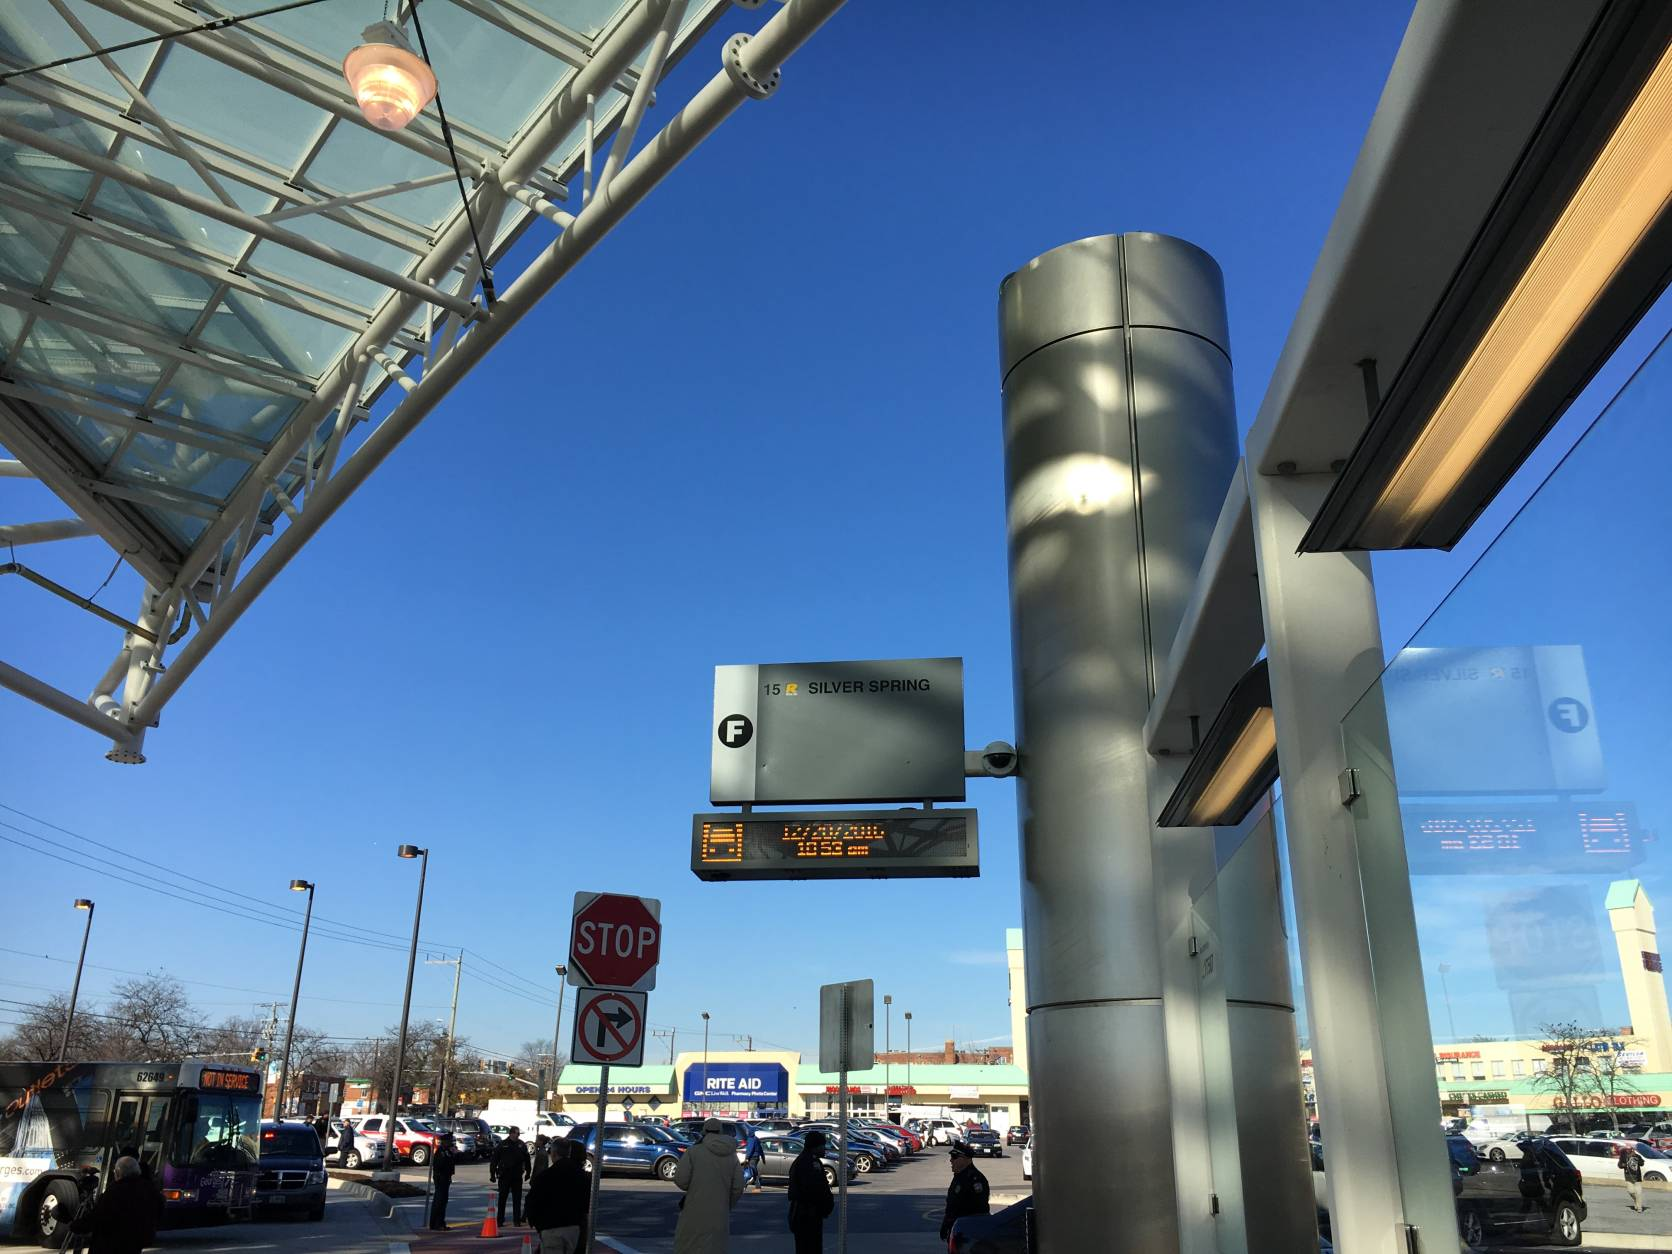 The $32 million transit center has rest rooms, an enclosed area, large area maps, overhead displays telling riders when their next bus will arrive and bike racks. (WTOP/Kate Ryan)